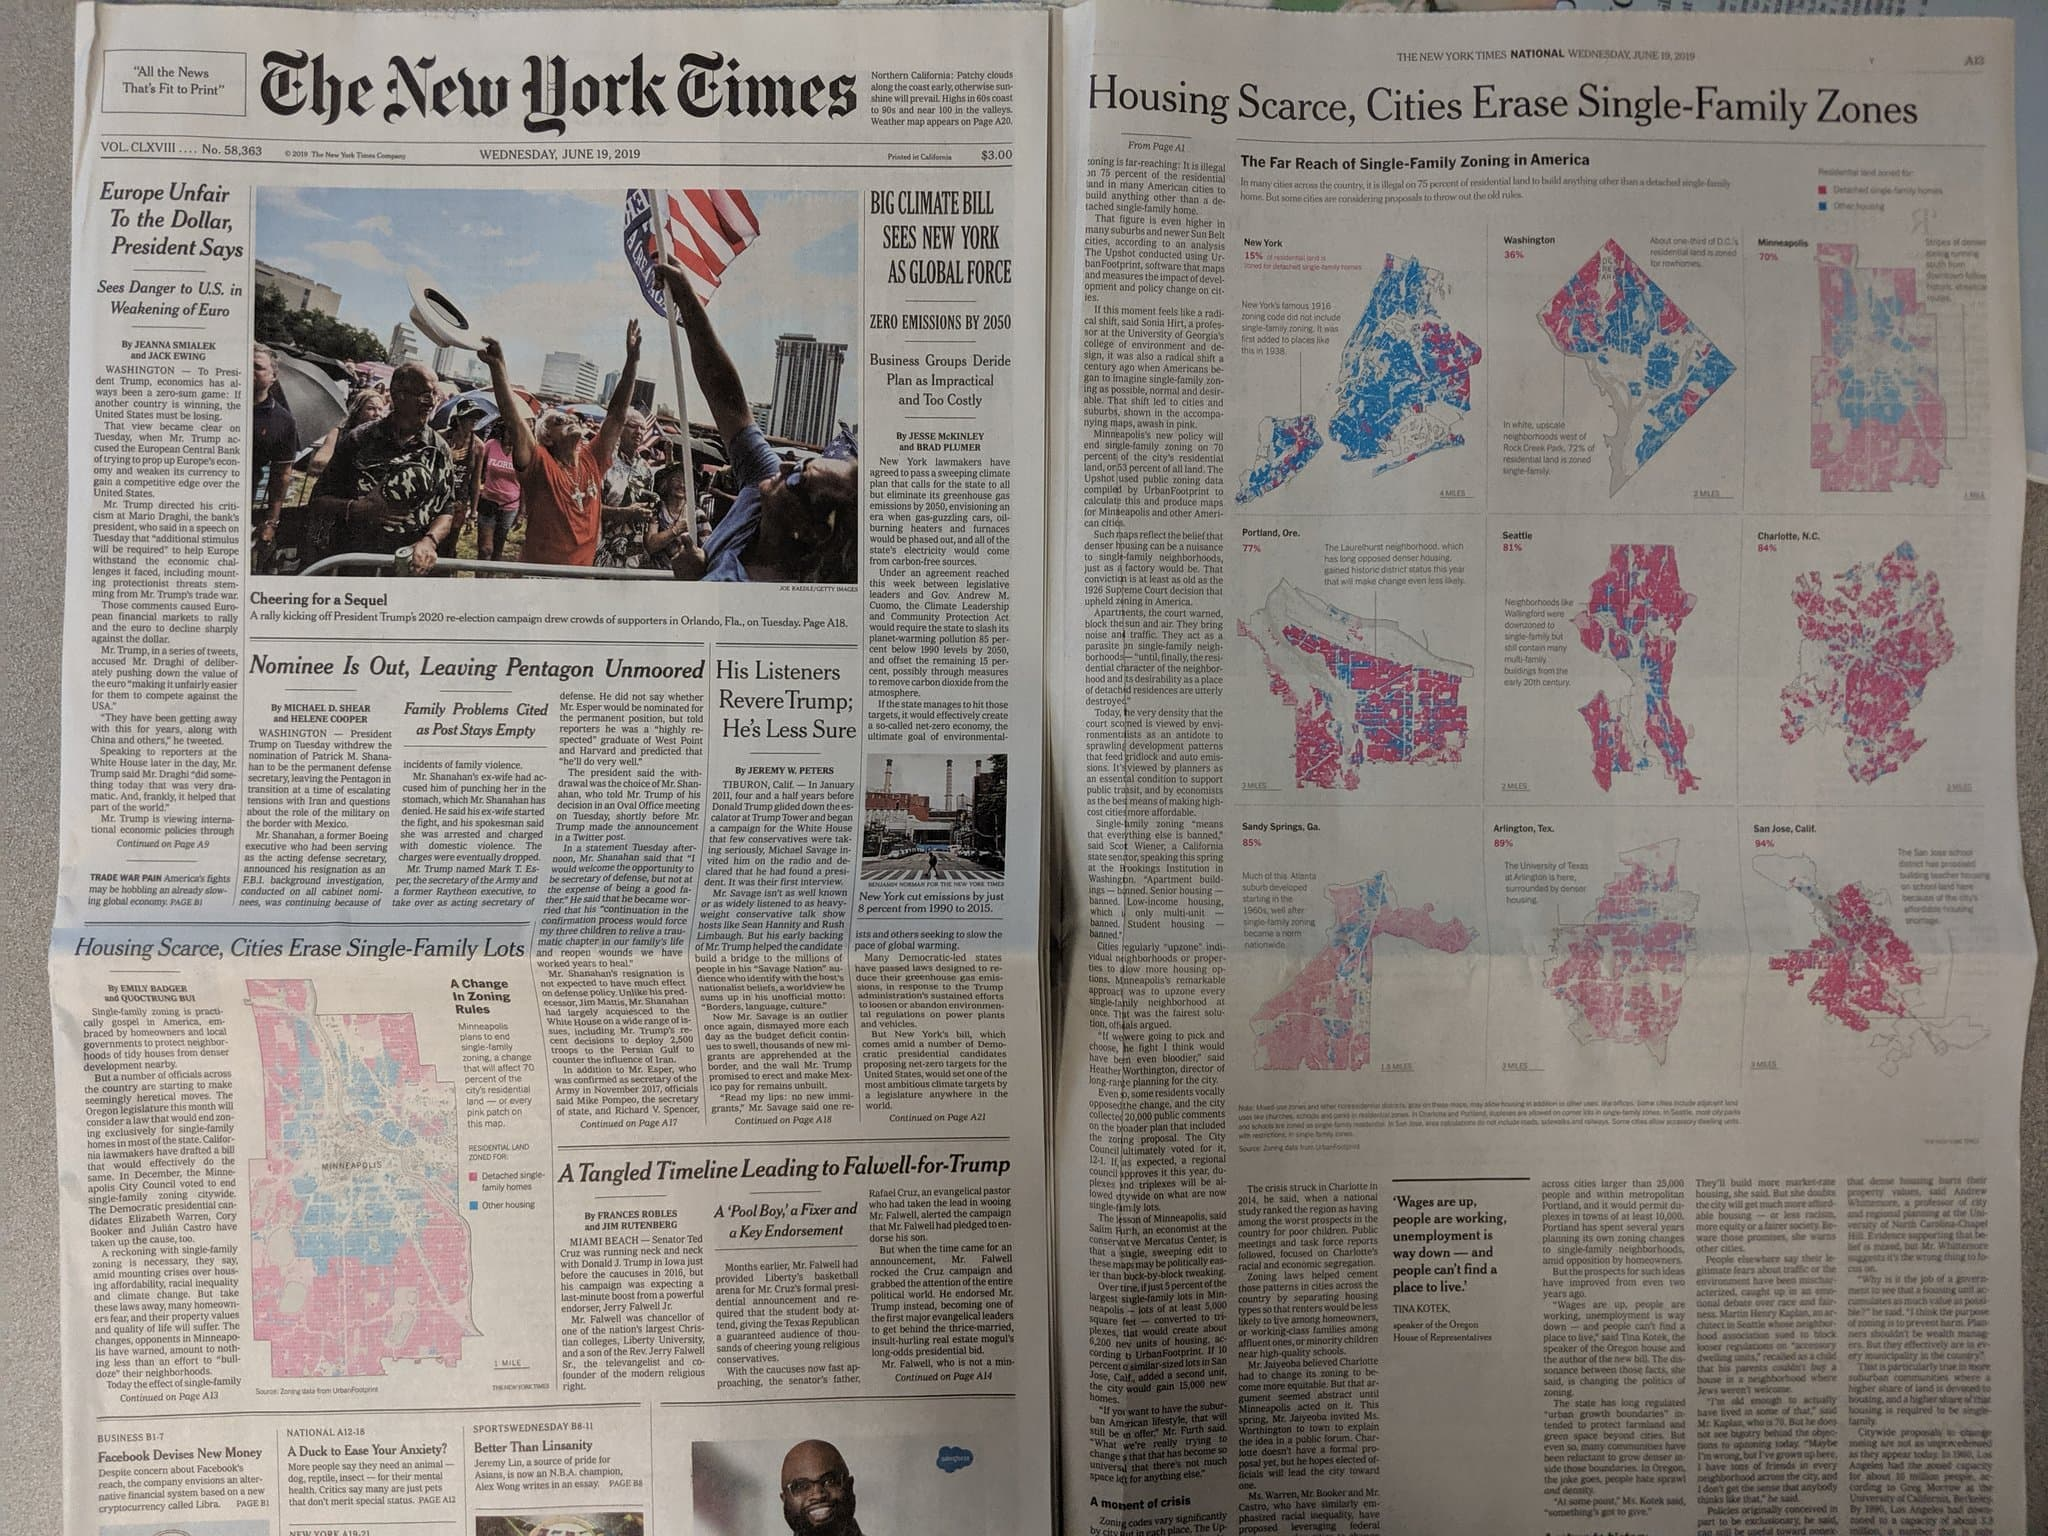 An Urban Footprint in the New York Times